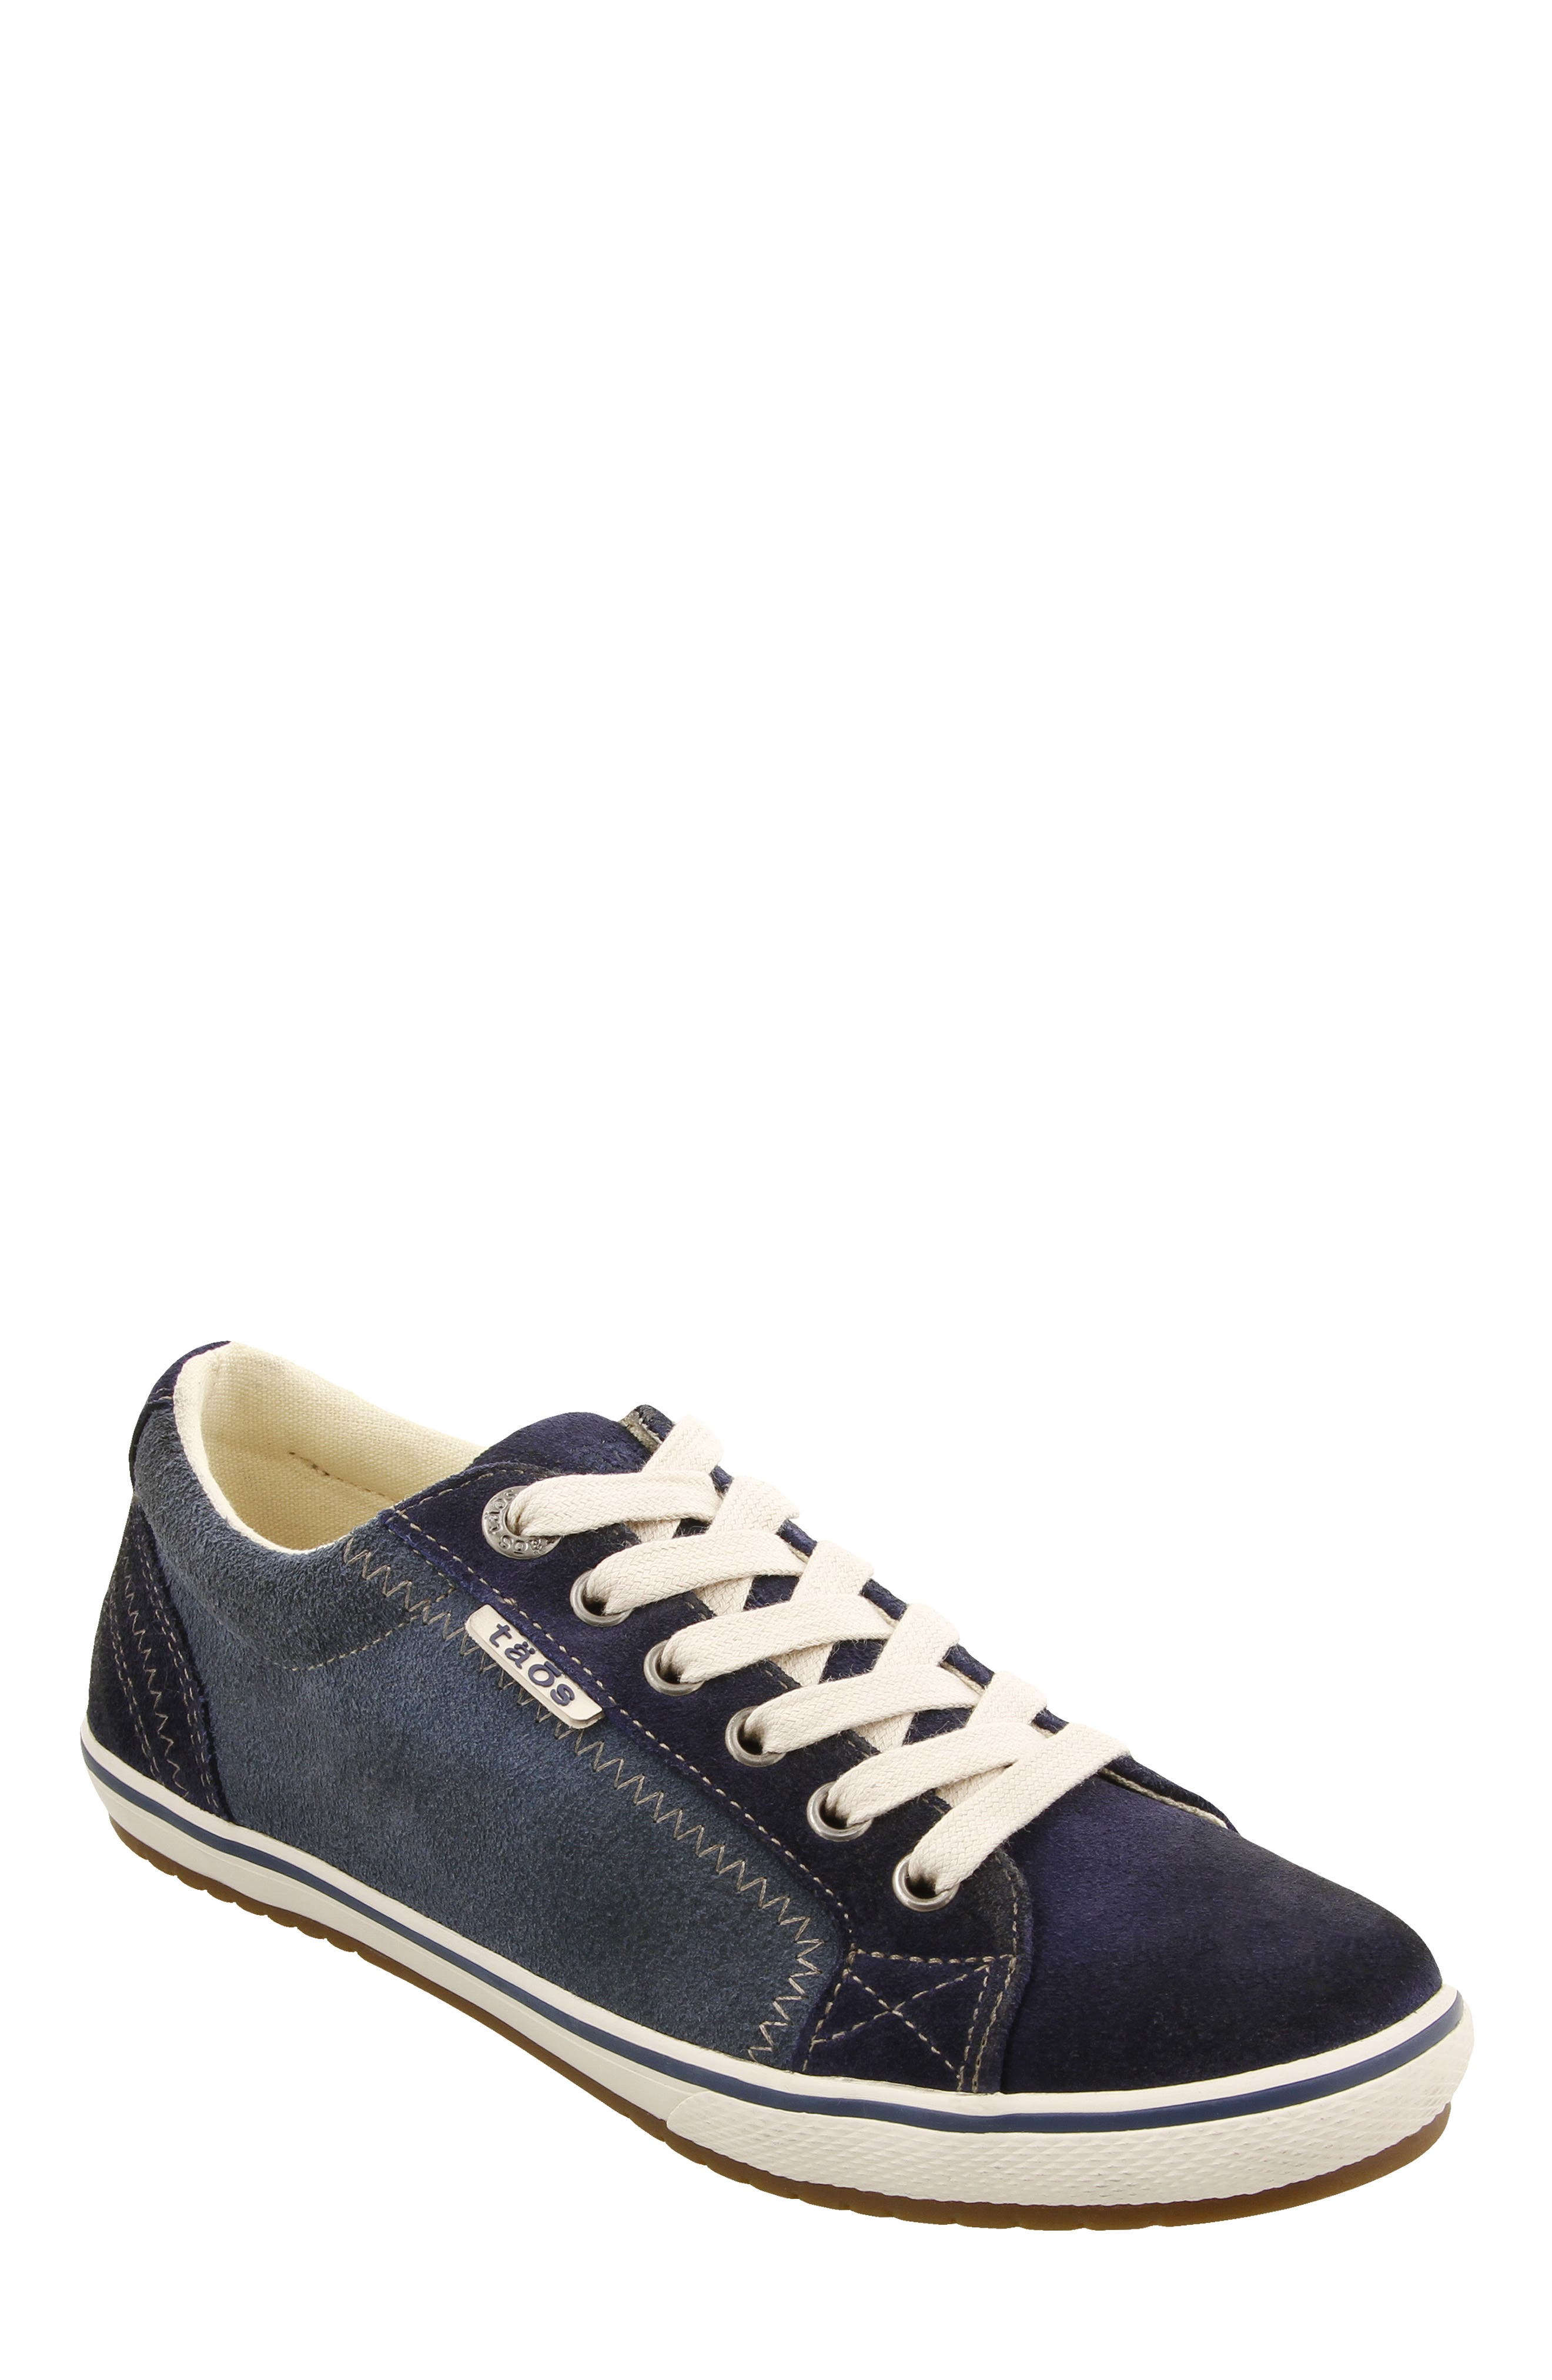 Retro Star Sneaker, Main, color, BLUE MULTI LEATHER